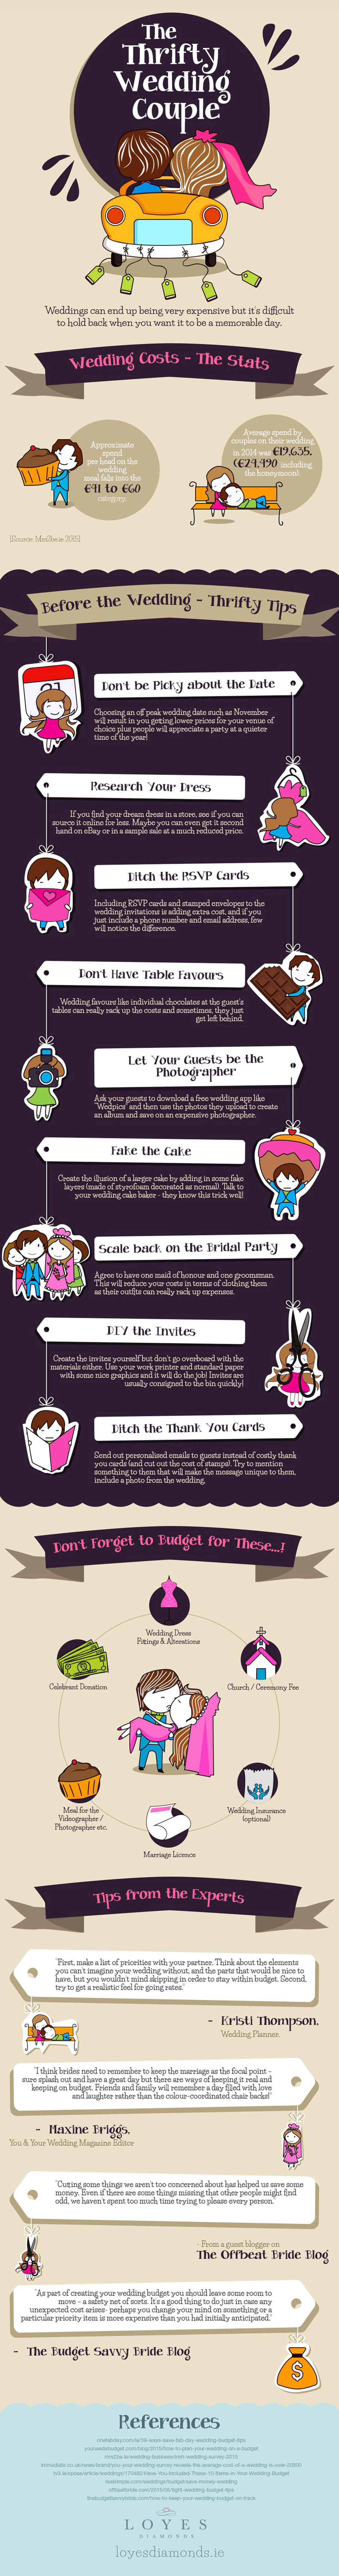 The Thrifty Wedding Couple Infographic